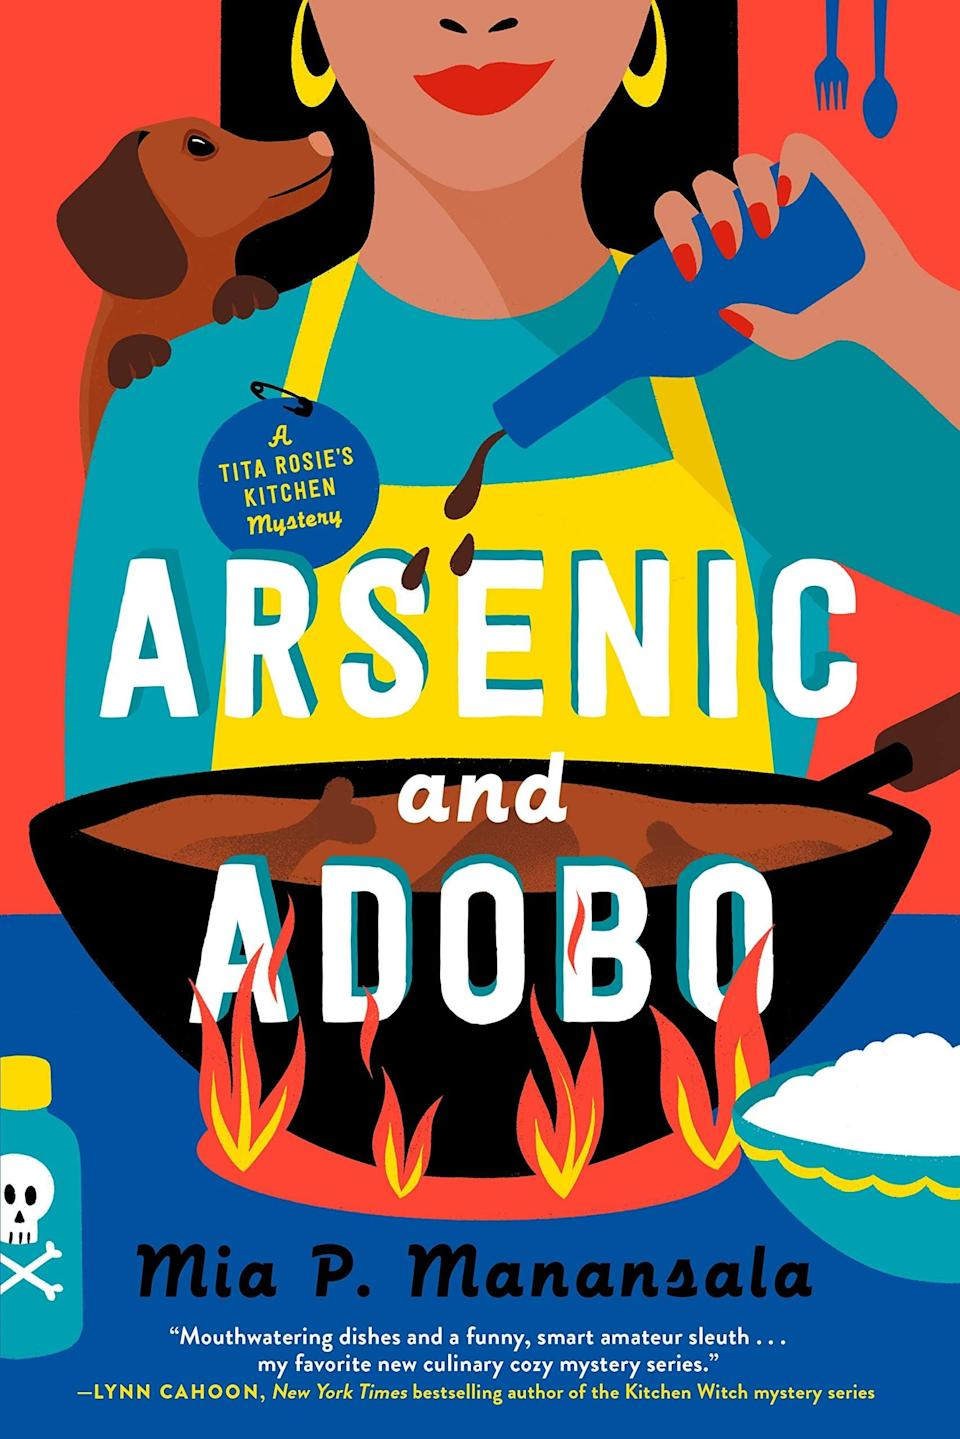 <p><span><strong>Arsenic and Adobo</strong></span> by Mia P. Manansala is the first book in a new food-centric cozy mystery series. The series kicks off with Lila Macapagal returning home after a bad breakup to save her family's restaurant. However, things take a turn when her food-critic ex dies shortly after the two of them argue, making Lila the number one suspect in the eyes of the police. </p> <p><em>Out May 4</em></p>